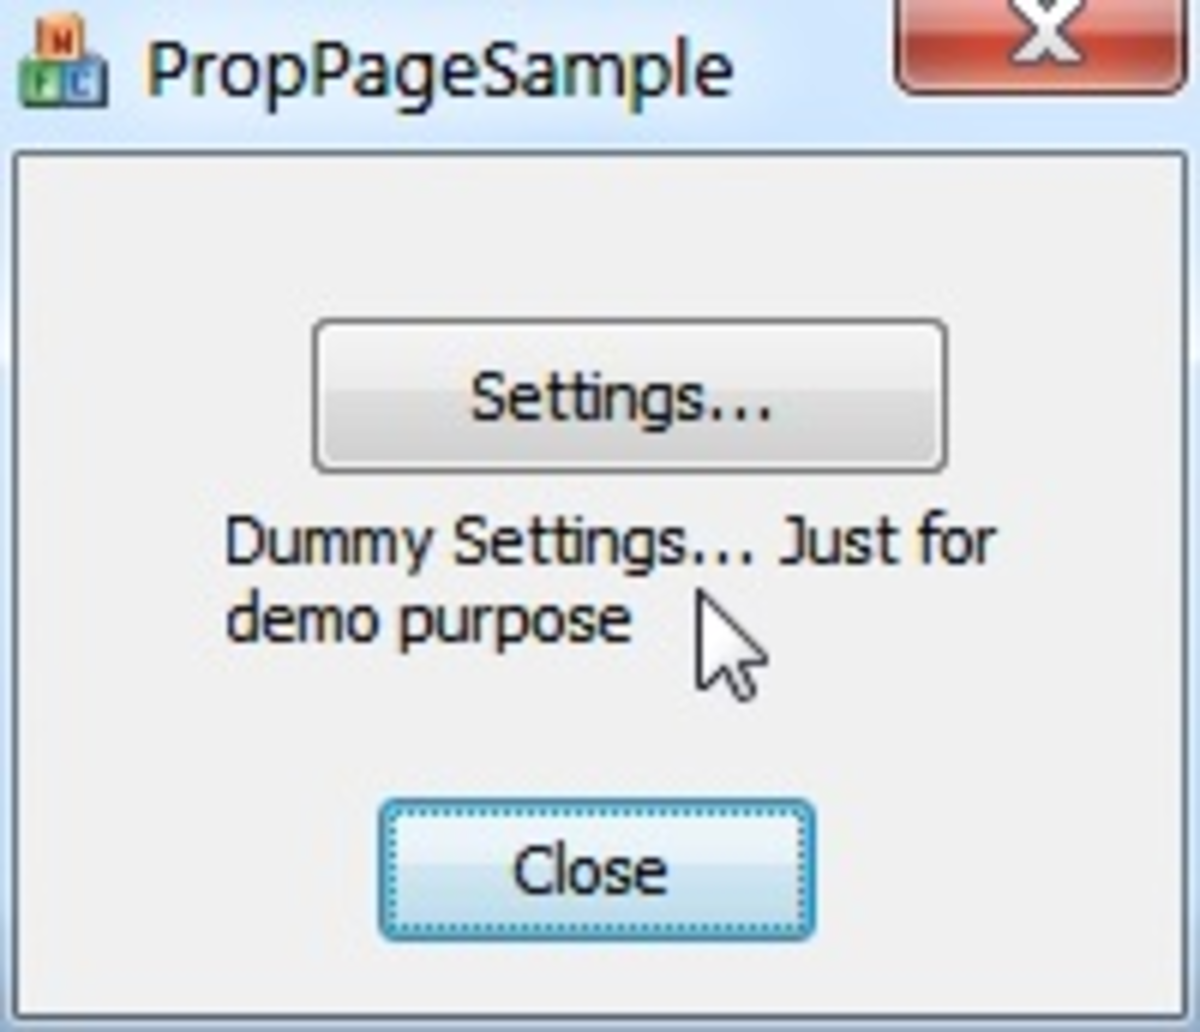 Main Dialog which launches PropertySheet Dialog